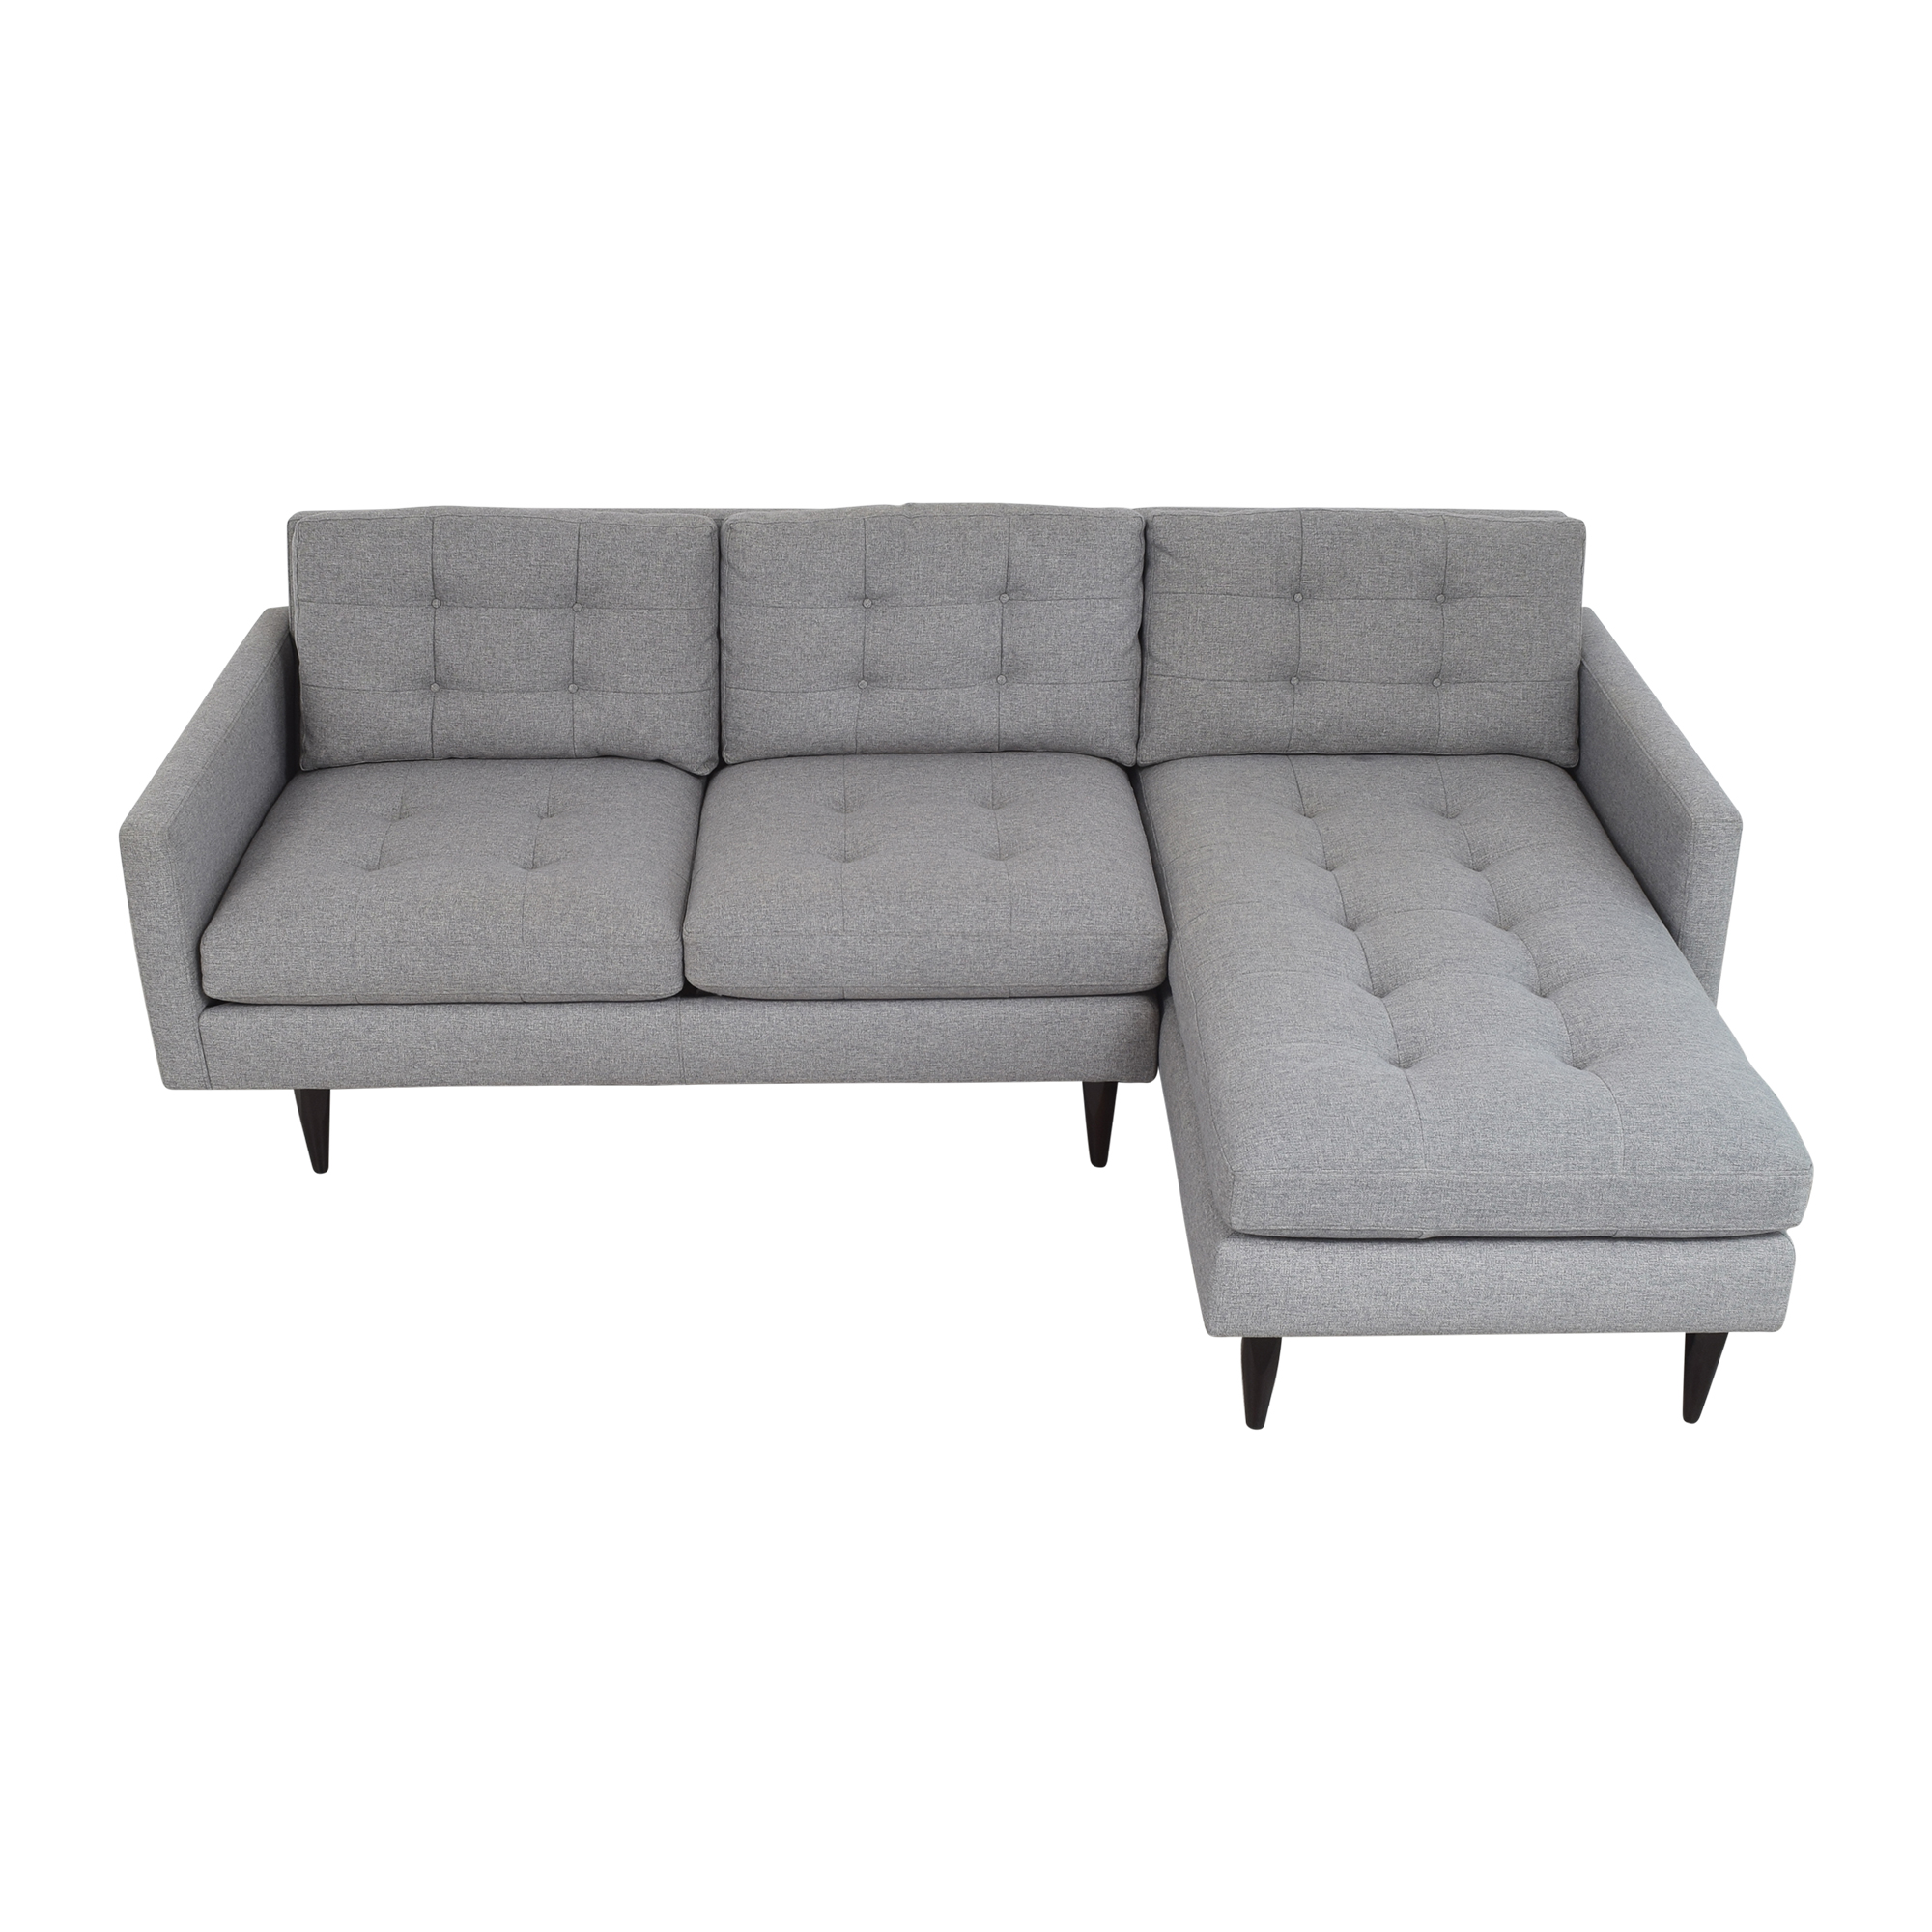 shop Crate & Barrel Crate & Barrel Petrie Two Piece Chaise Midcentury Sectional Sofa online